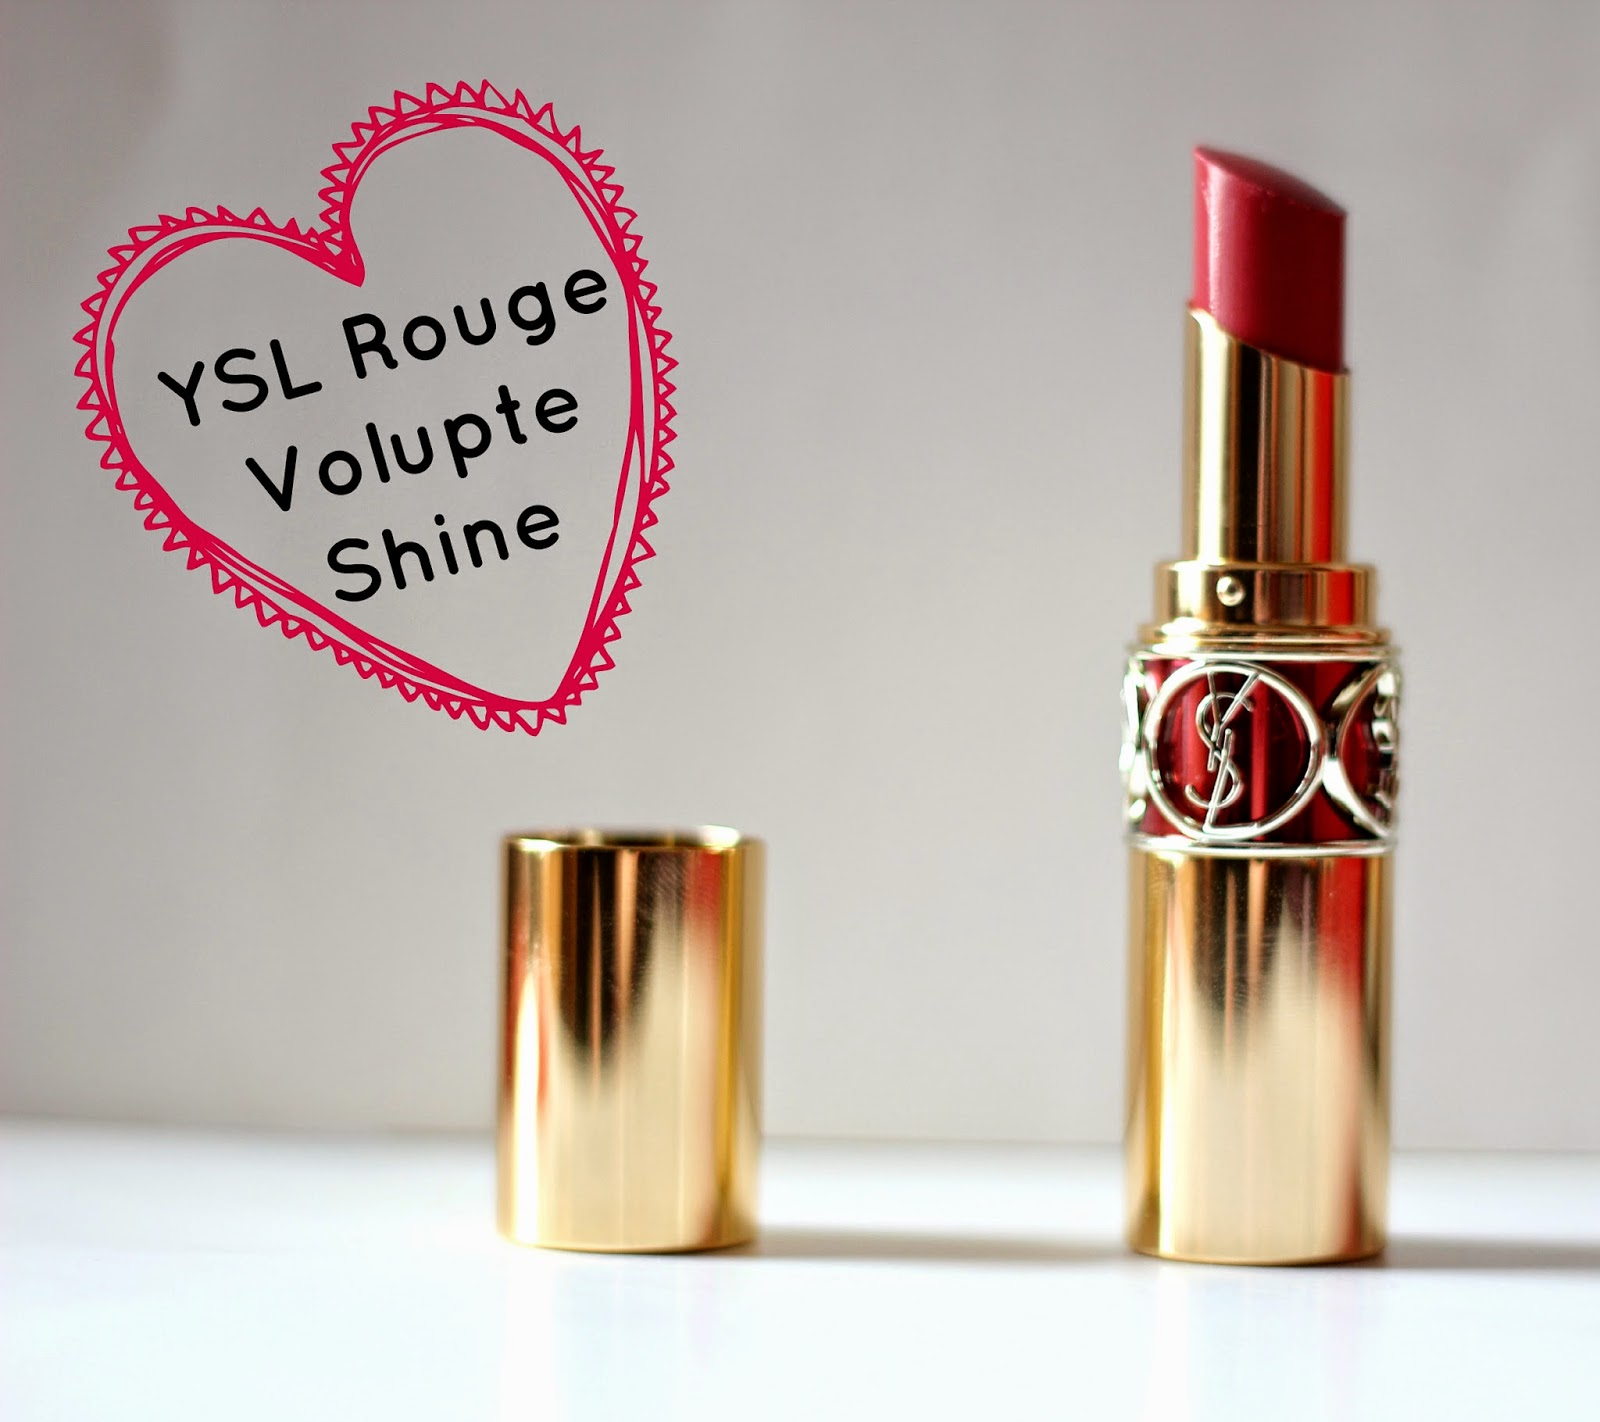 YSL rouge volupte shine lipstick rose in tension